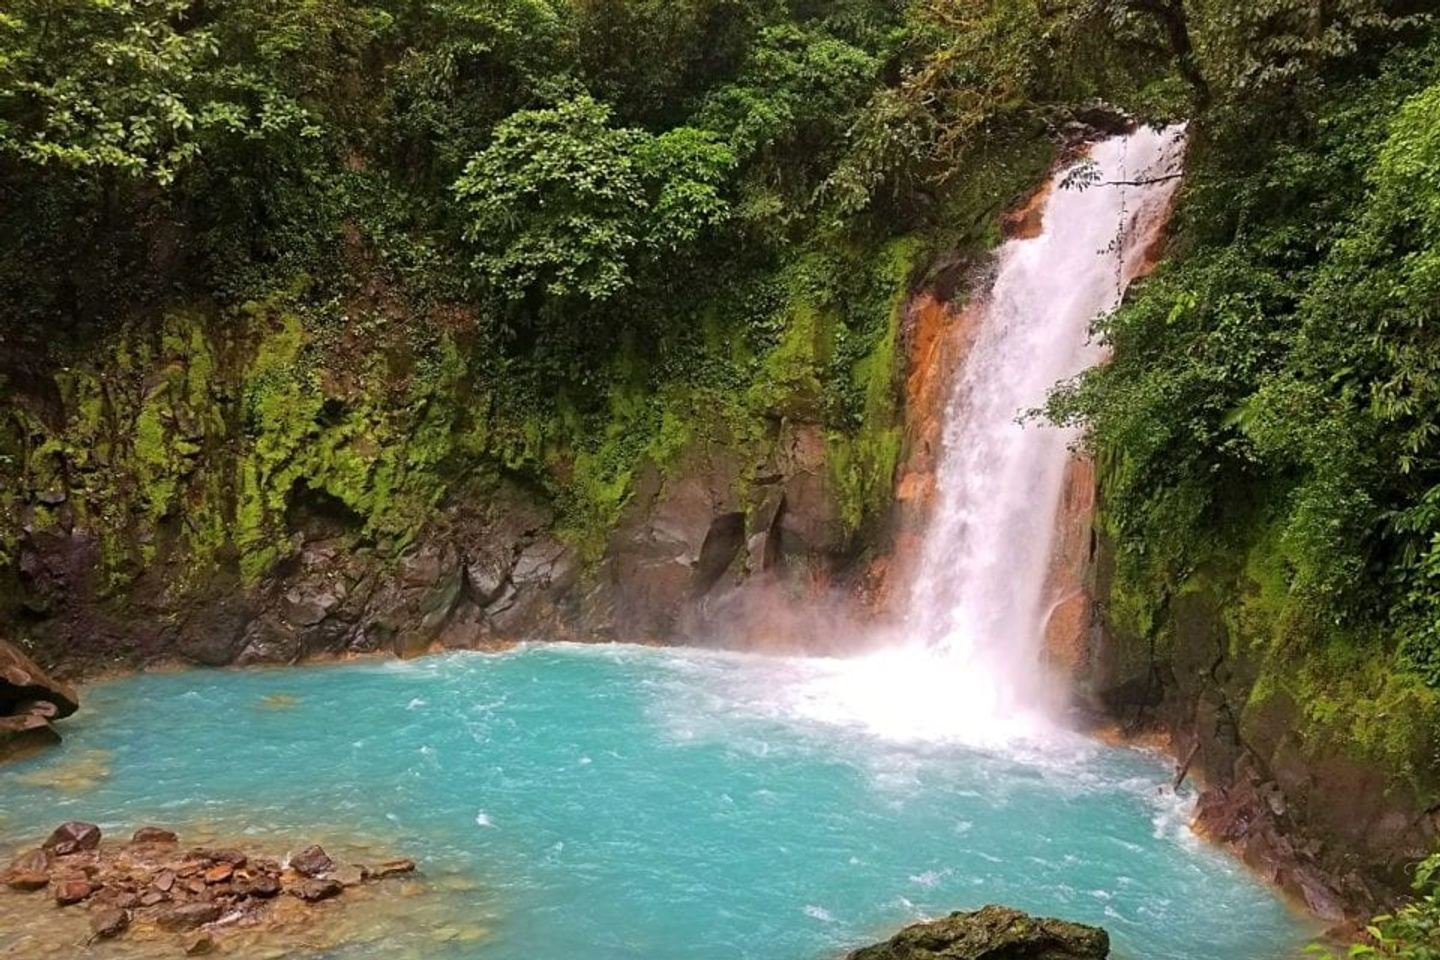 The Real Costa Rica